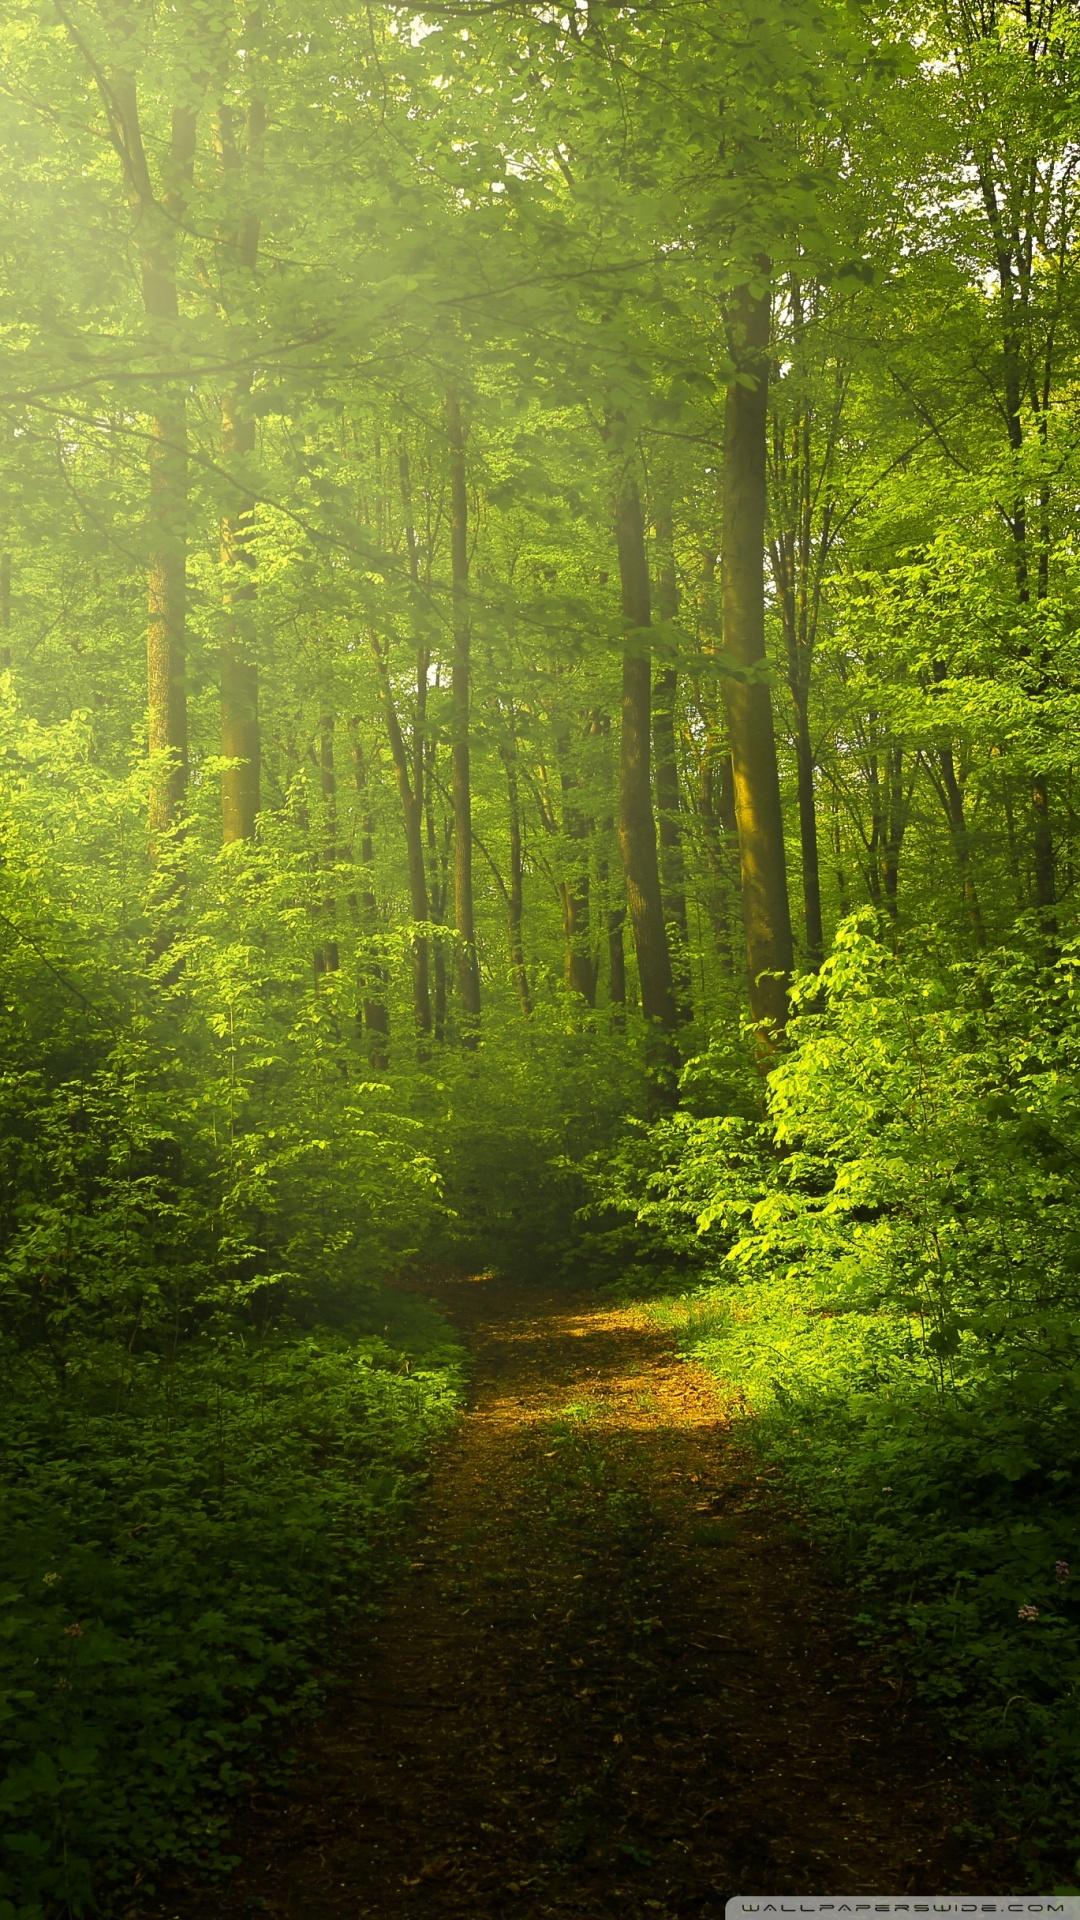 Nature Wallpaper beautiful nature image green forest ...